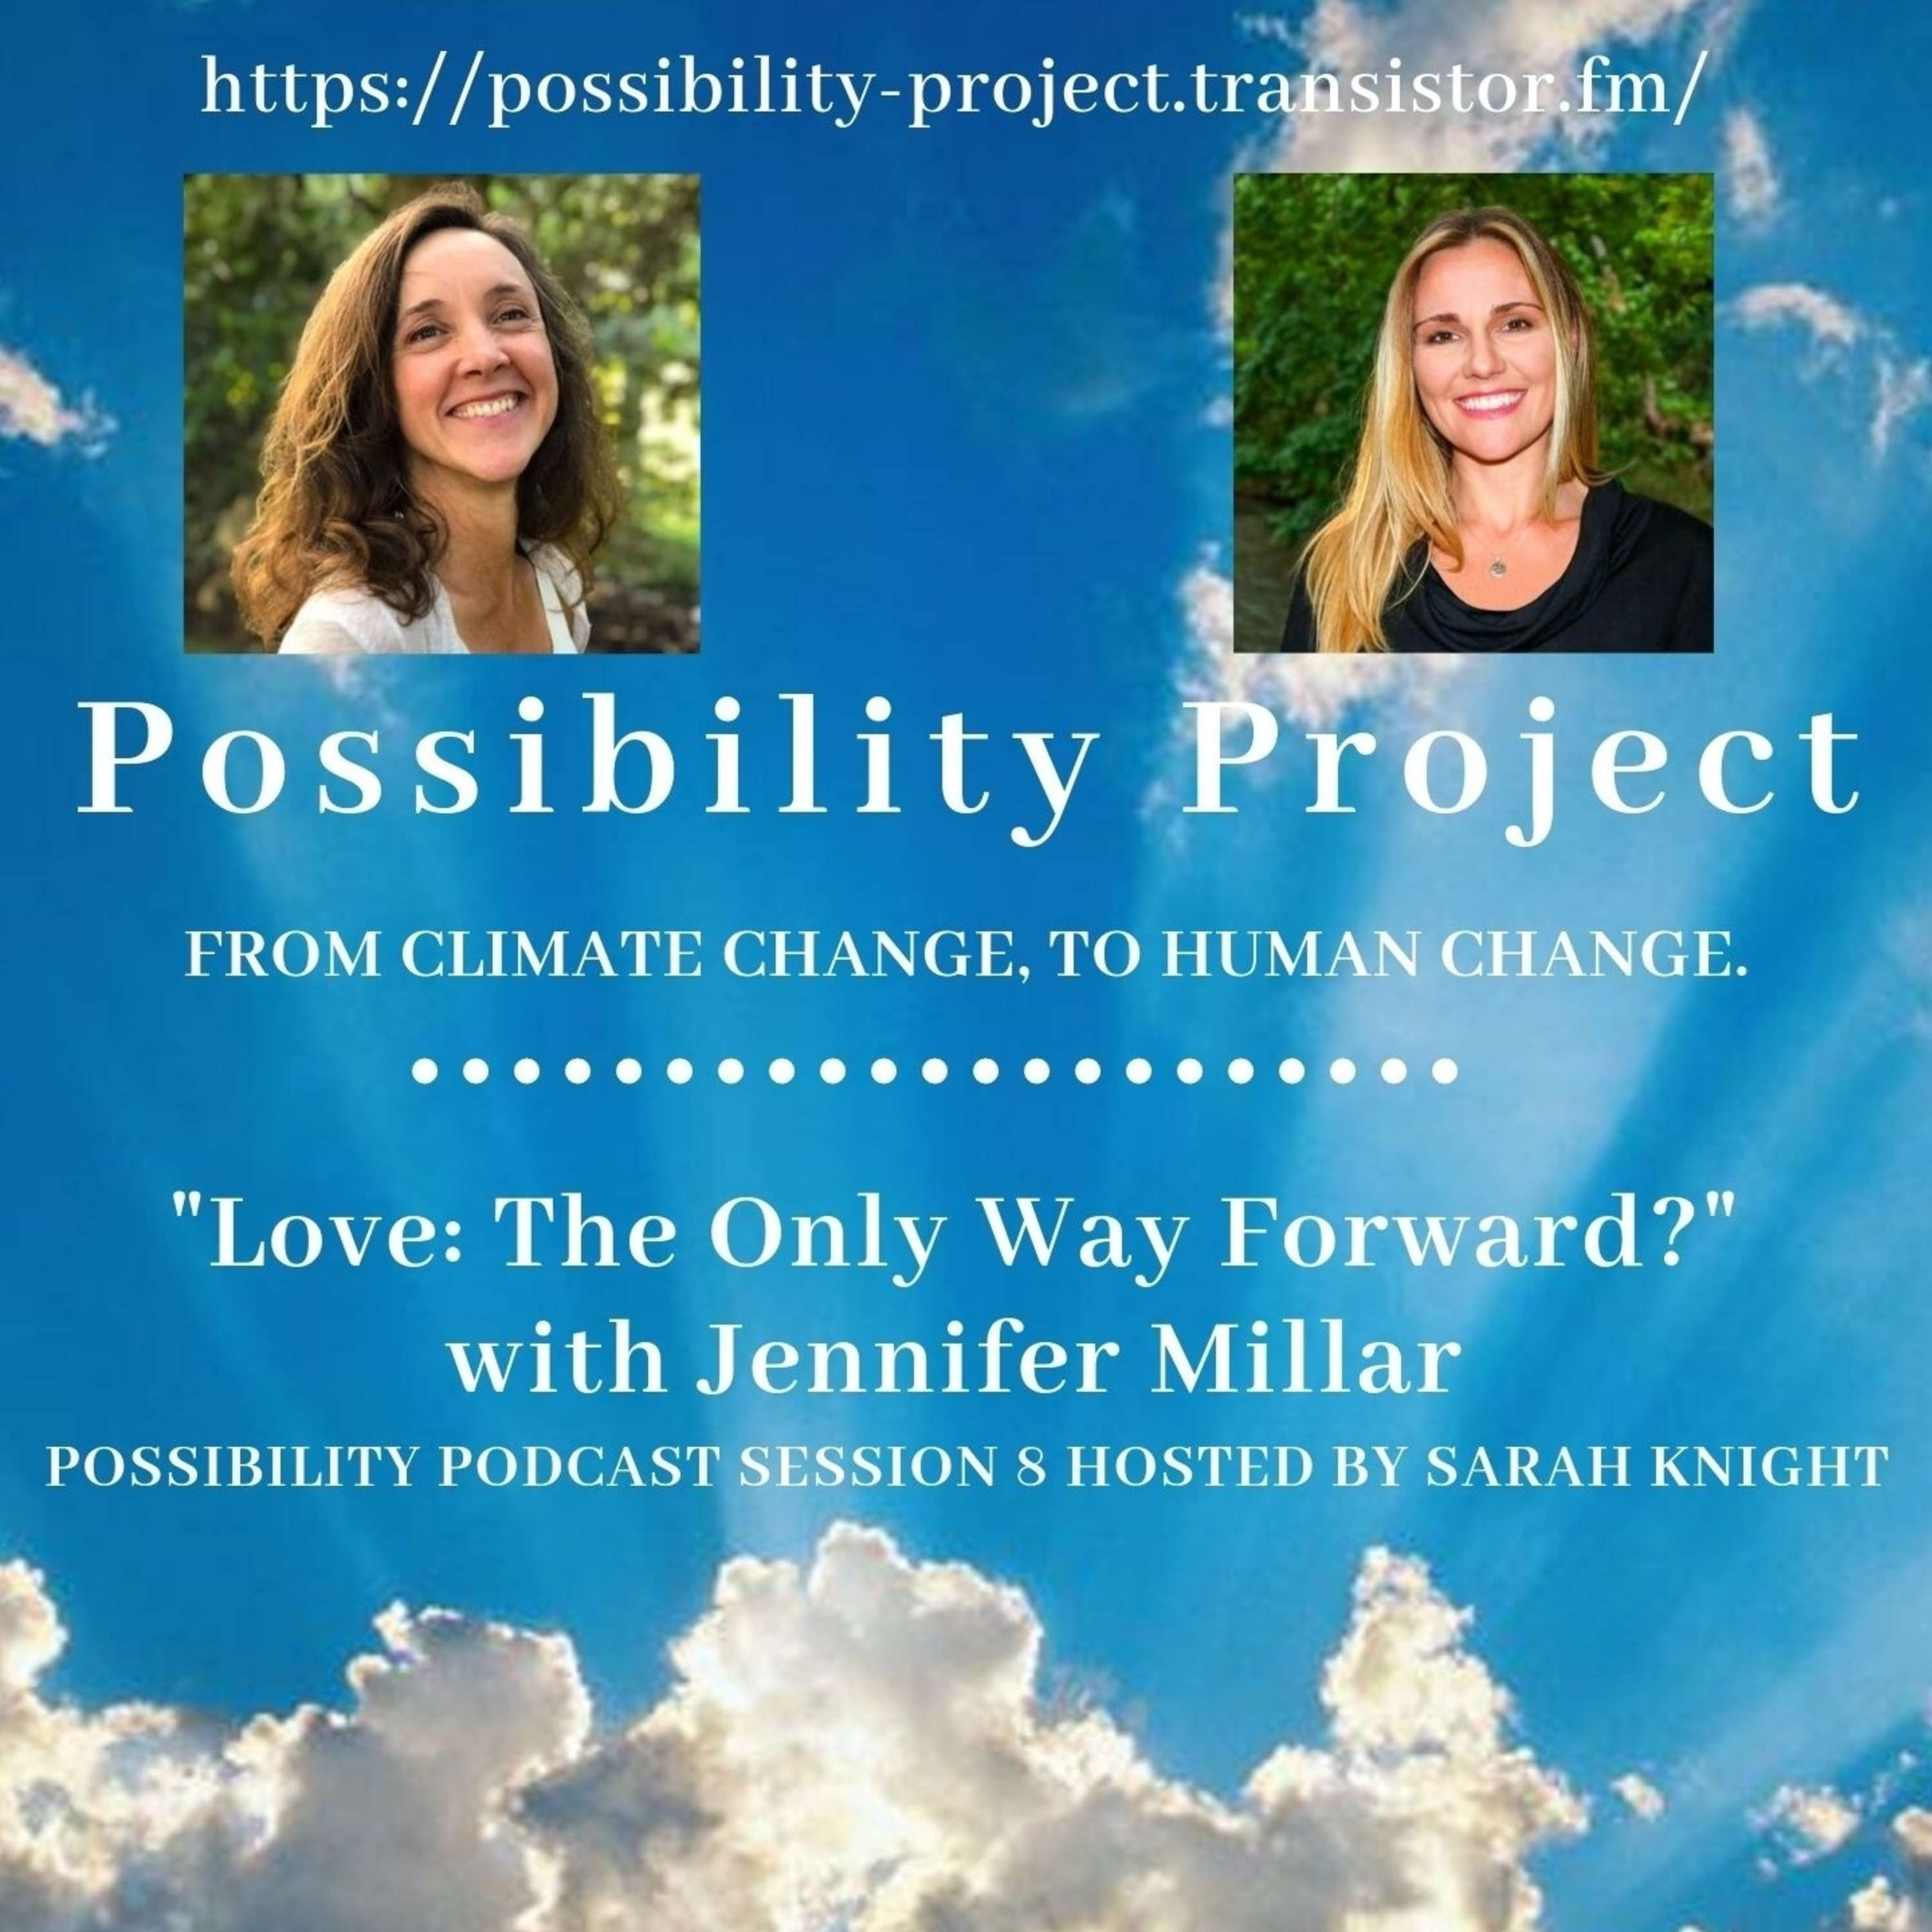 Love: The Only Way Forward? Possibility Podcast Session 8